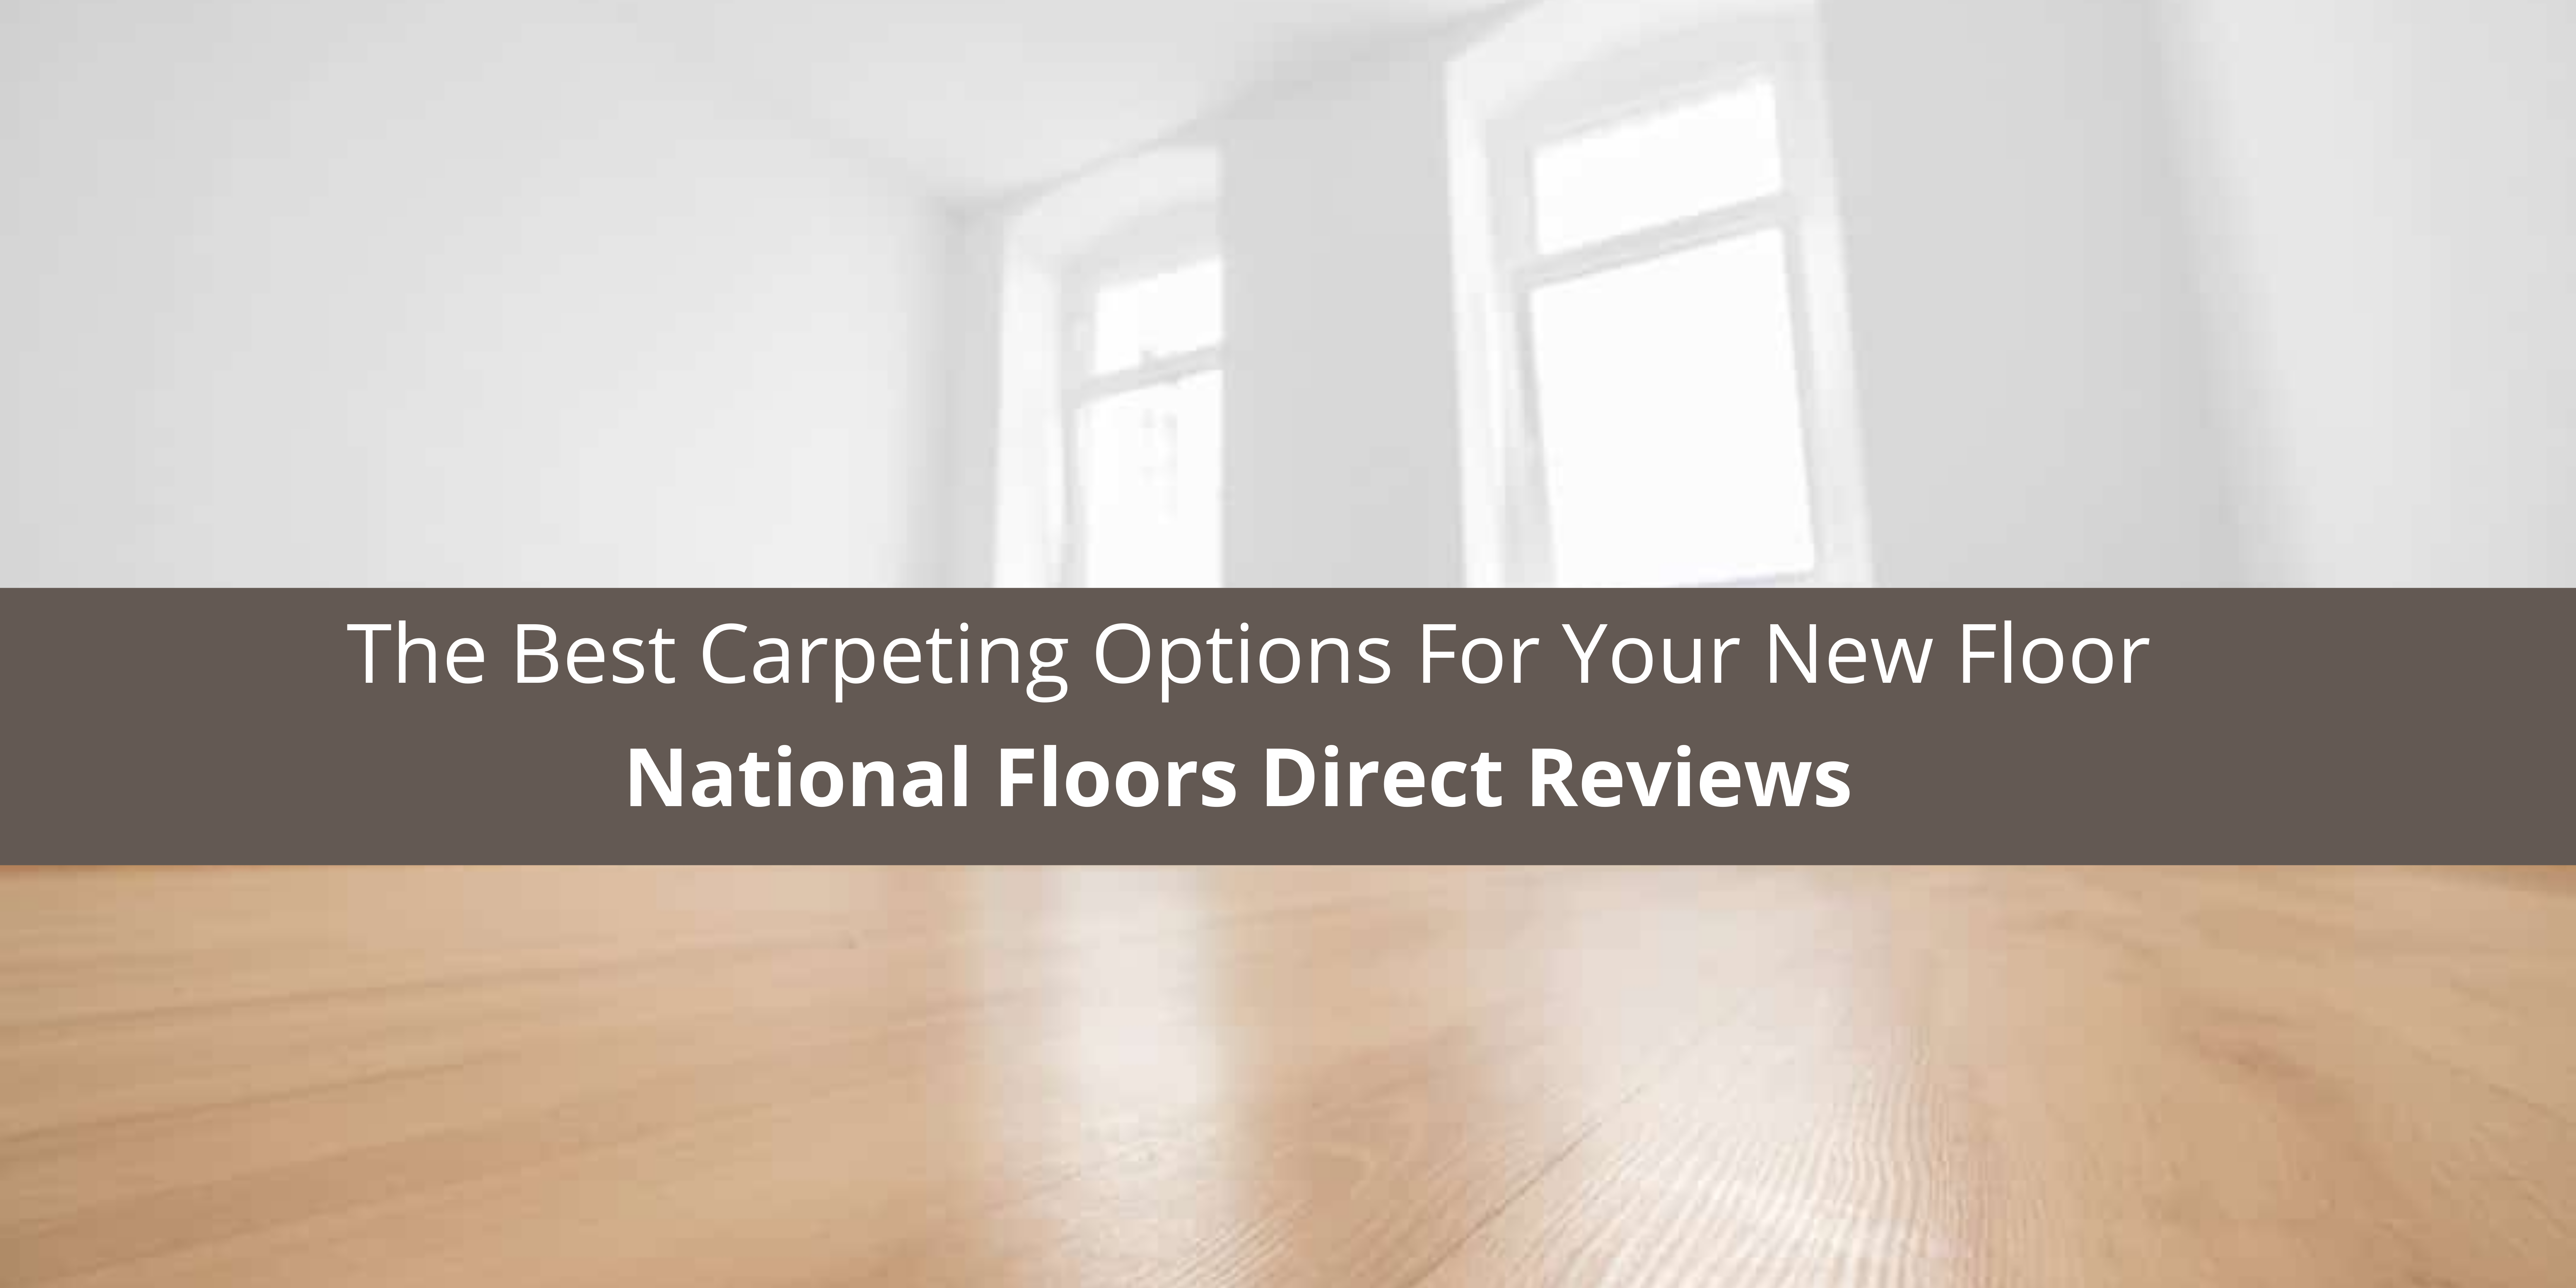 National Floors Direct Reviews The Best Carpeting Options For New Floor